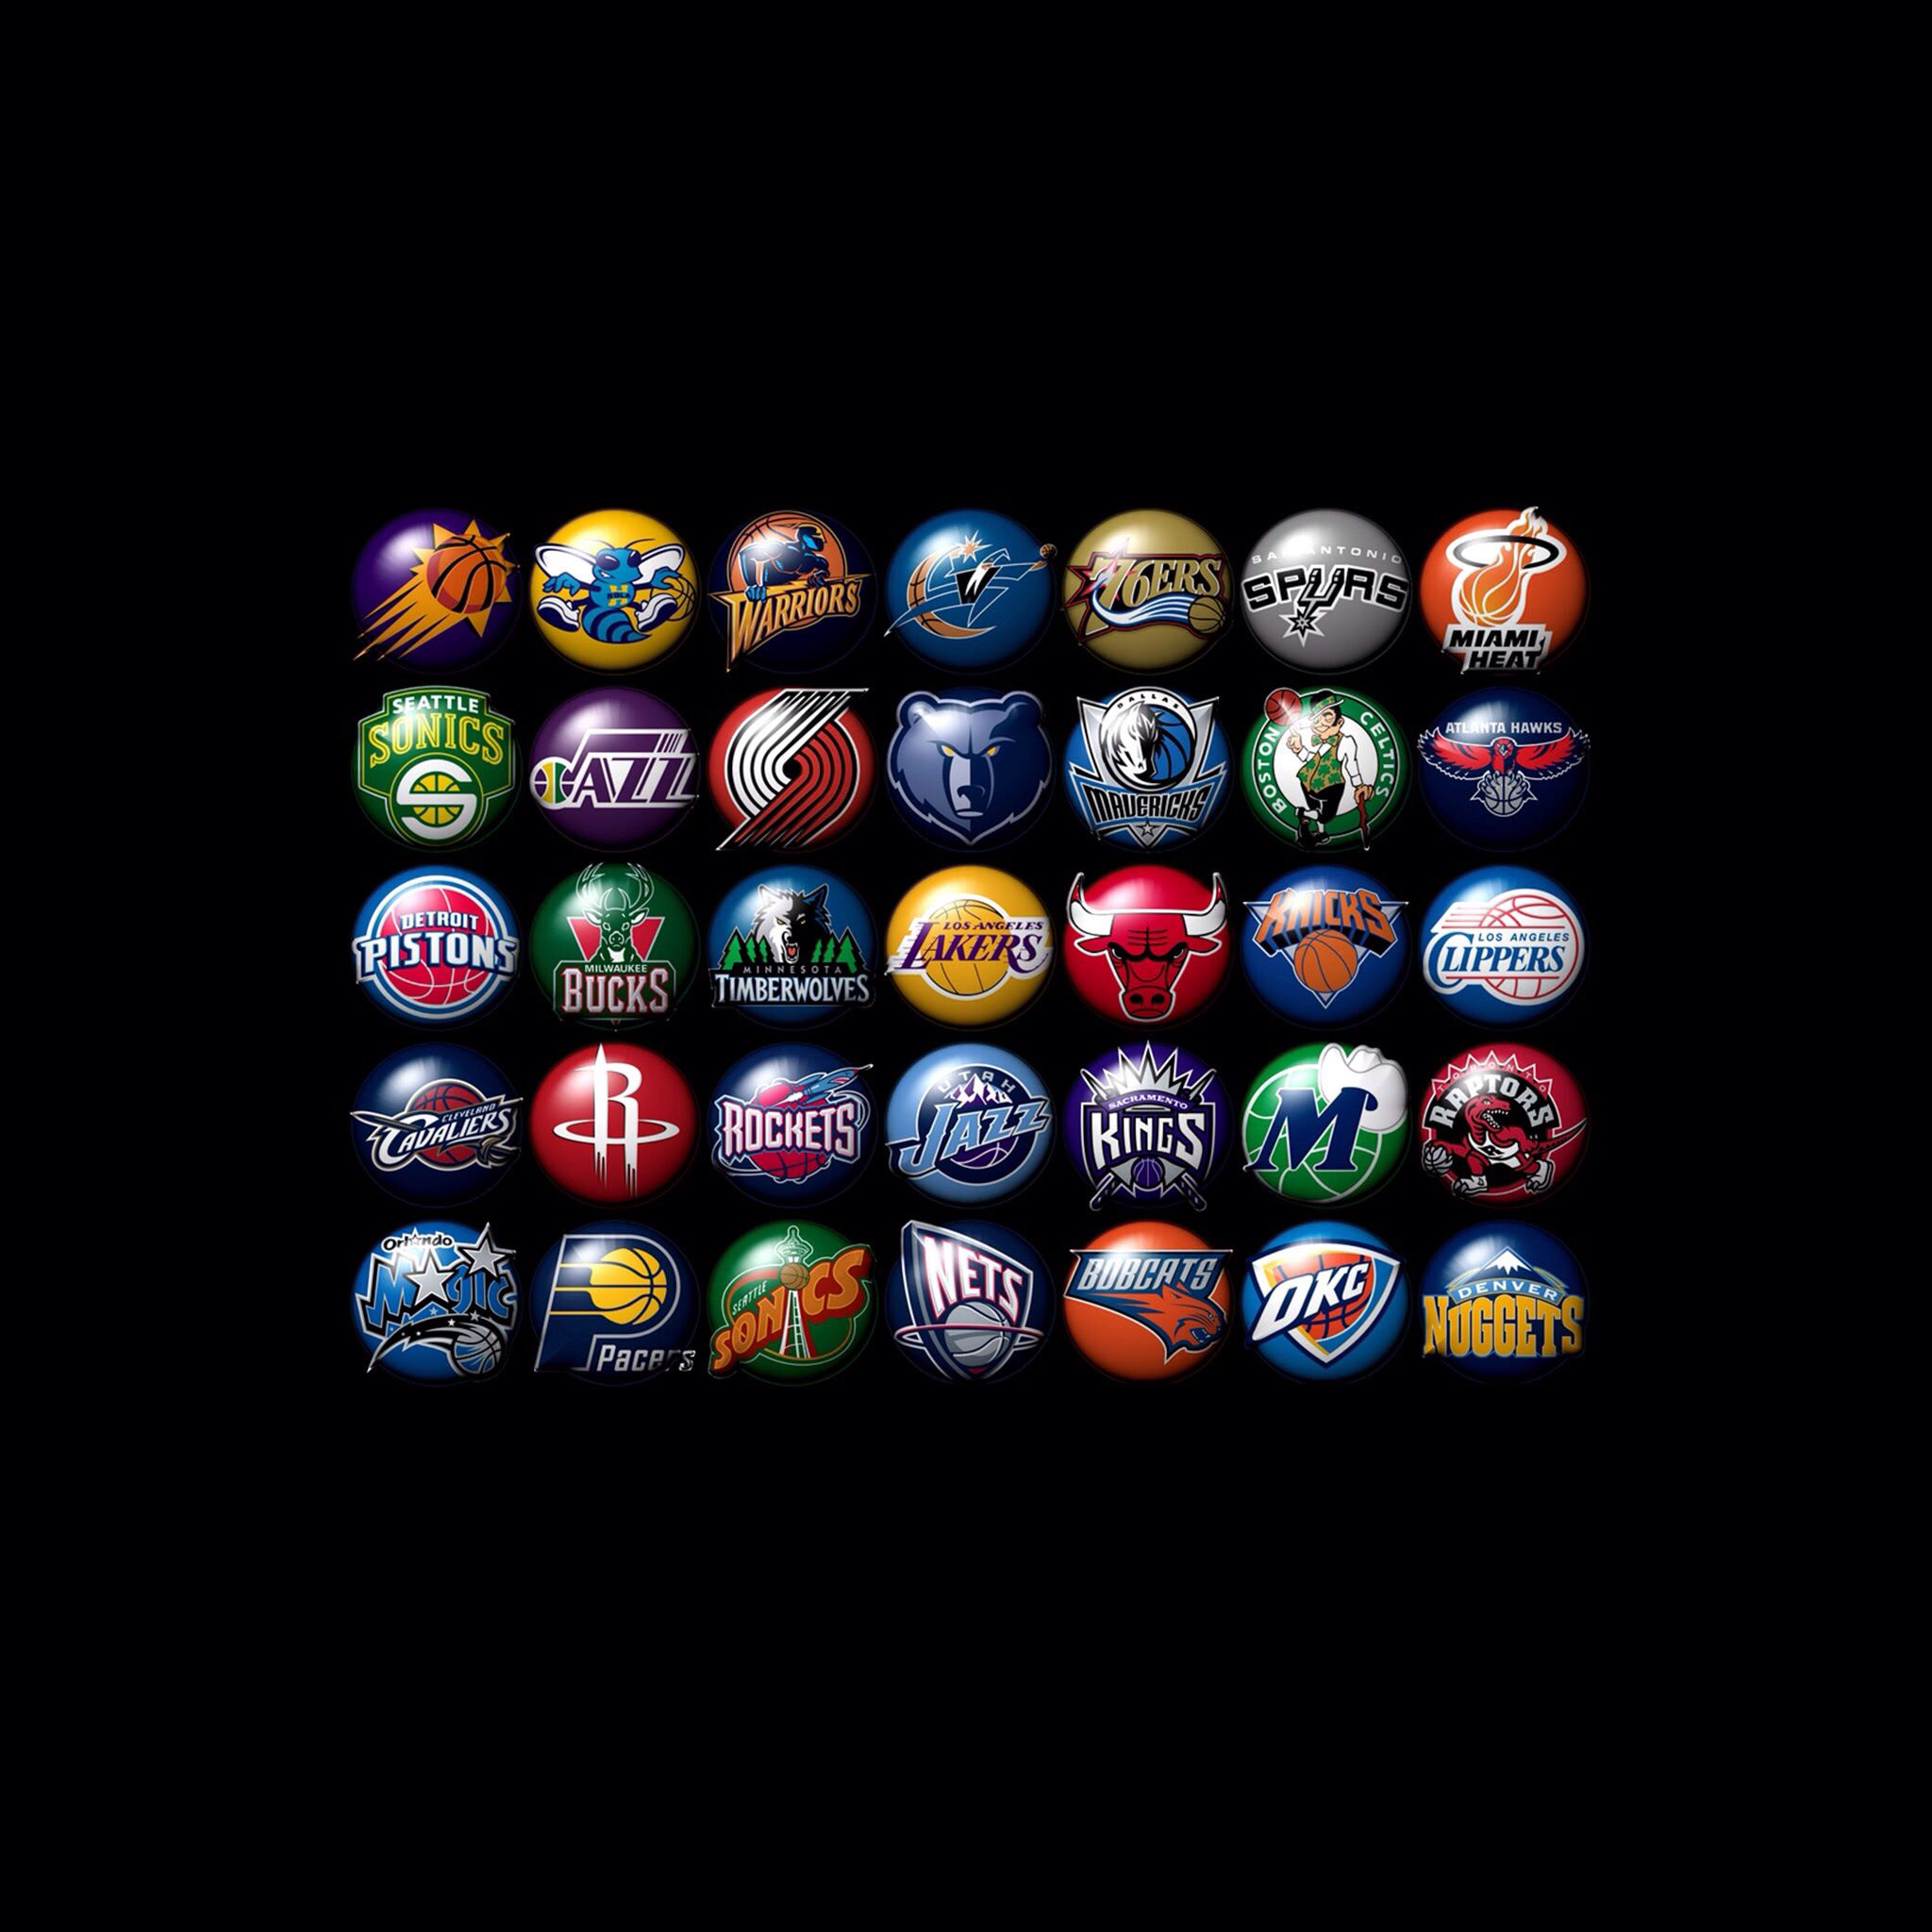 Nba Teams: Backgrounds And Wallpapers